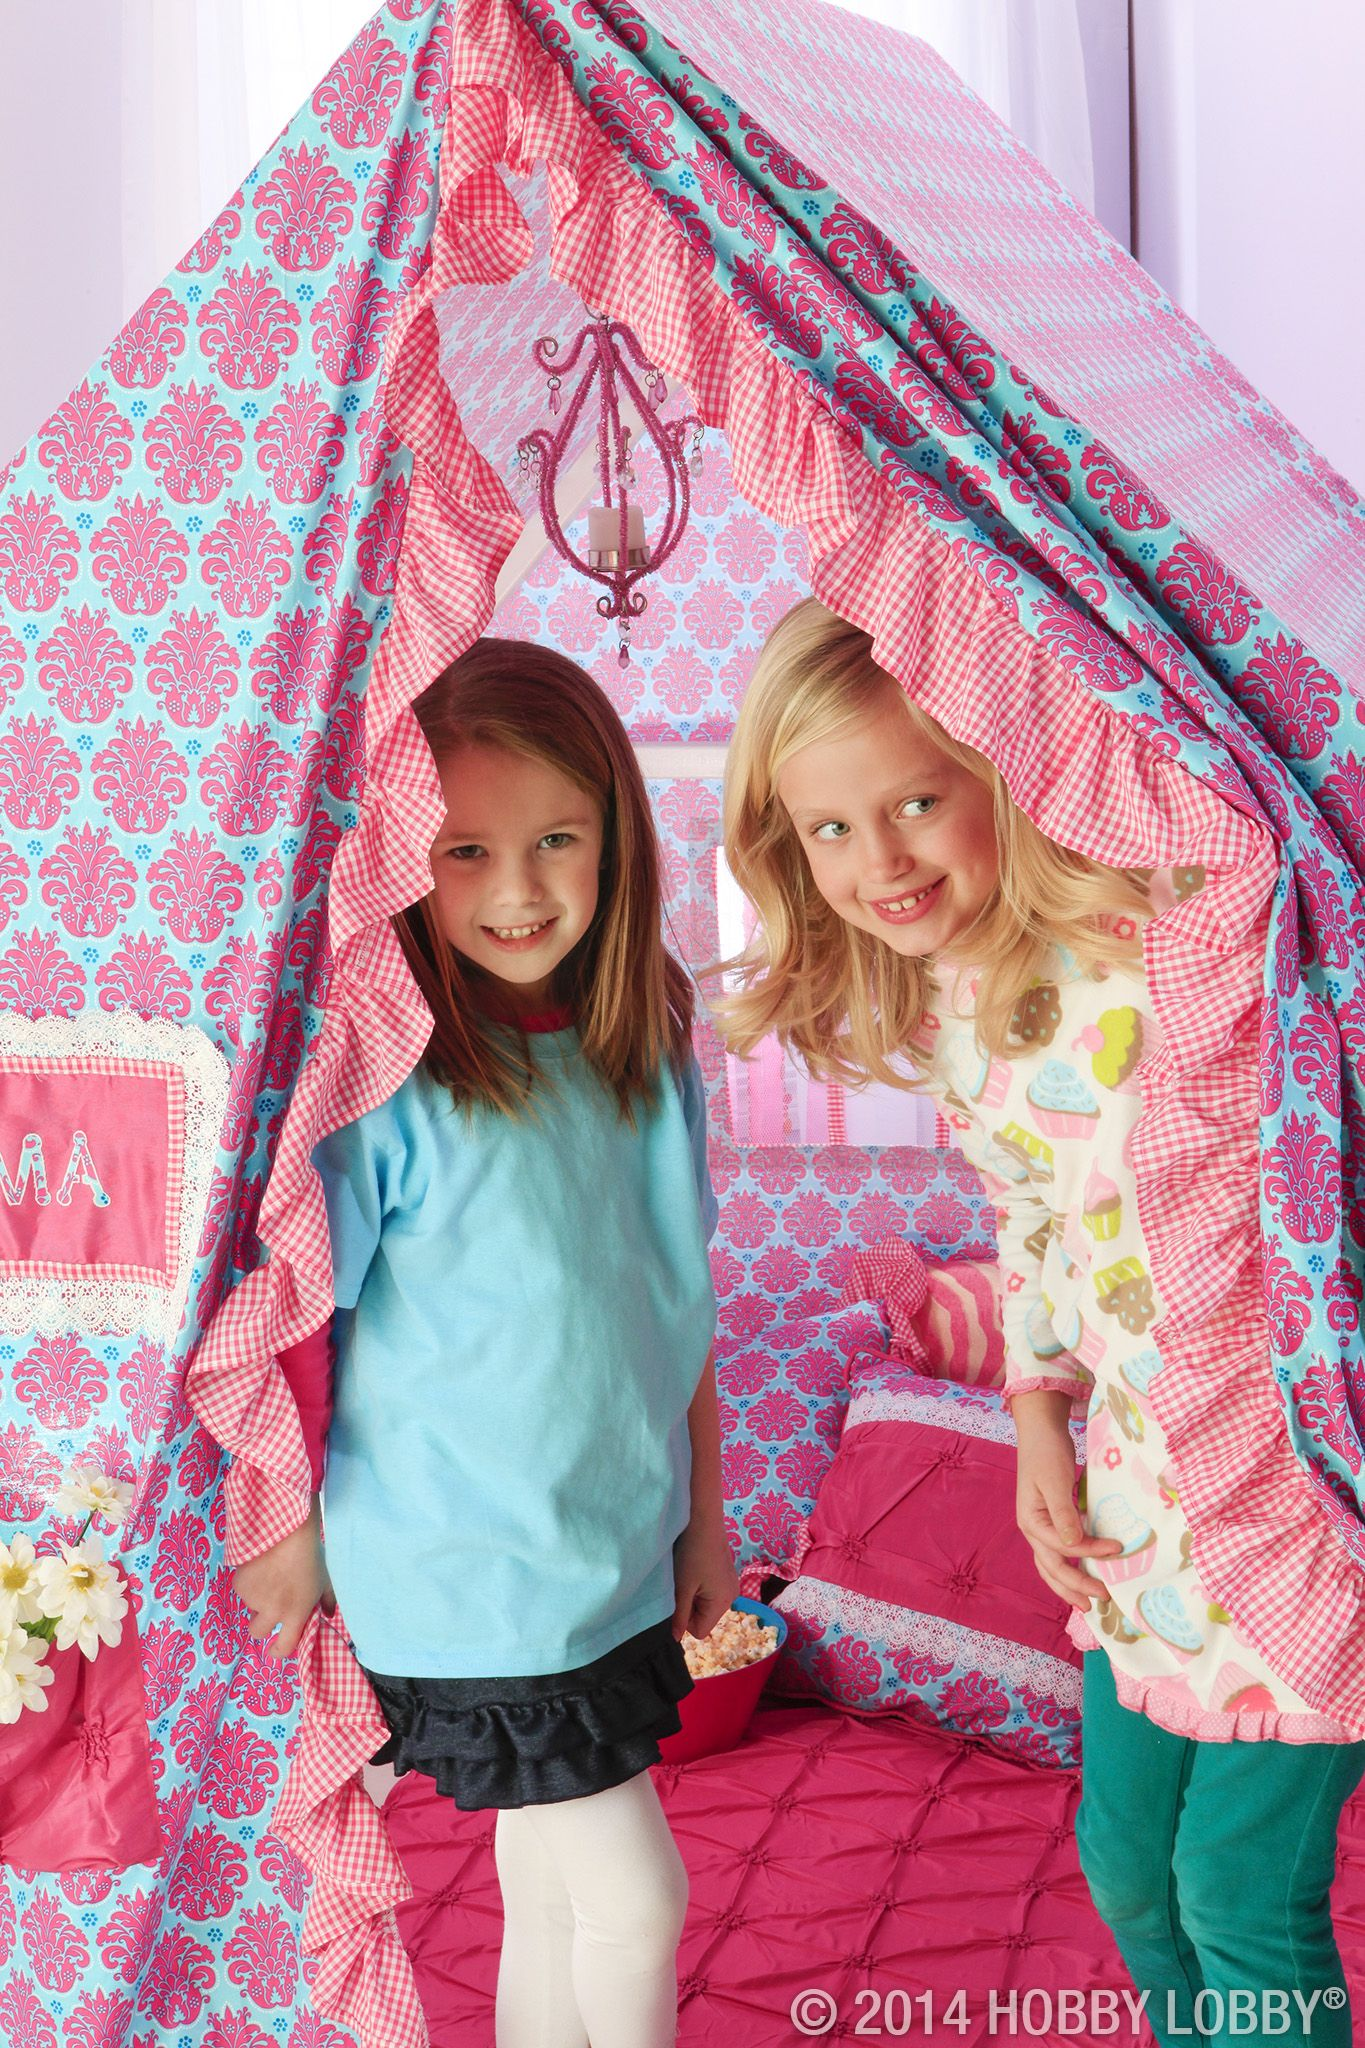 It's the mother of all play tents: house-shaped, pink from top to bottom and covered in frilly details. We pulled off the pretty with pink and blue damask, flirty coordinating gingham and a few pops of gorgeous puckered faux silk. Ahhh…welcome to girl world.